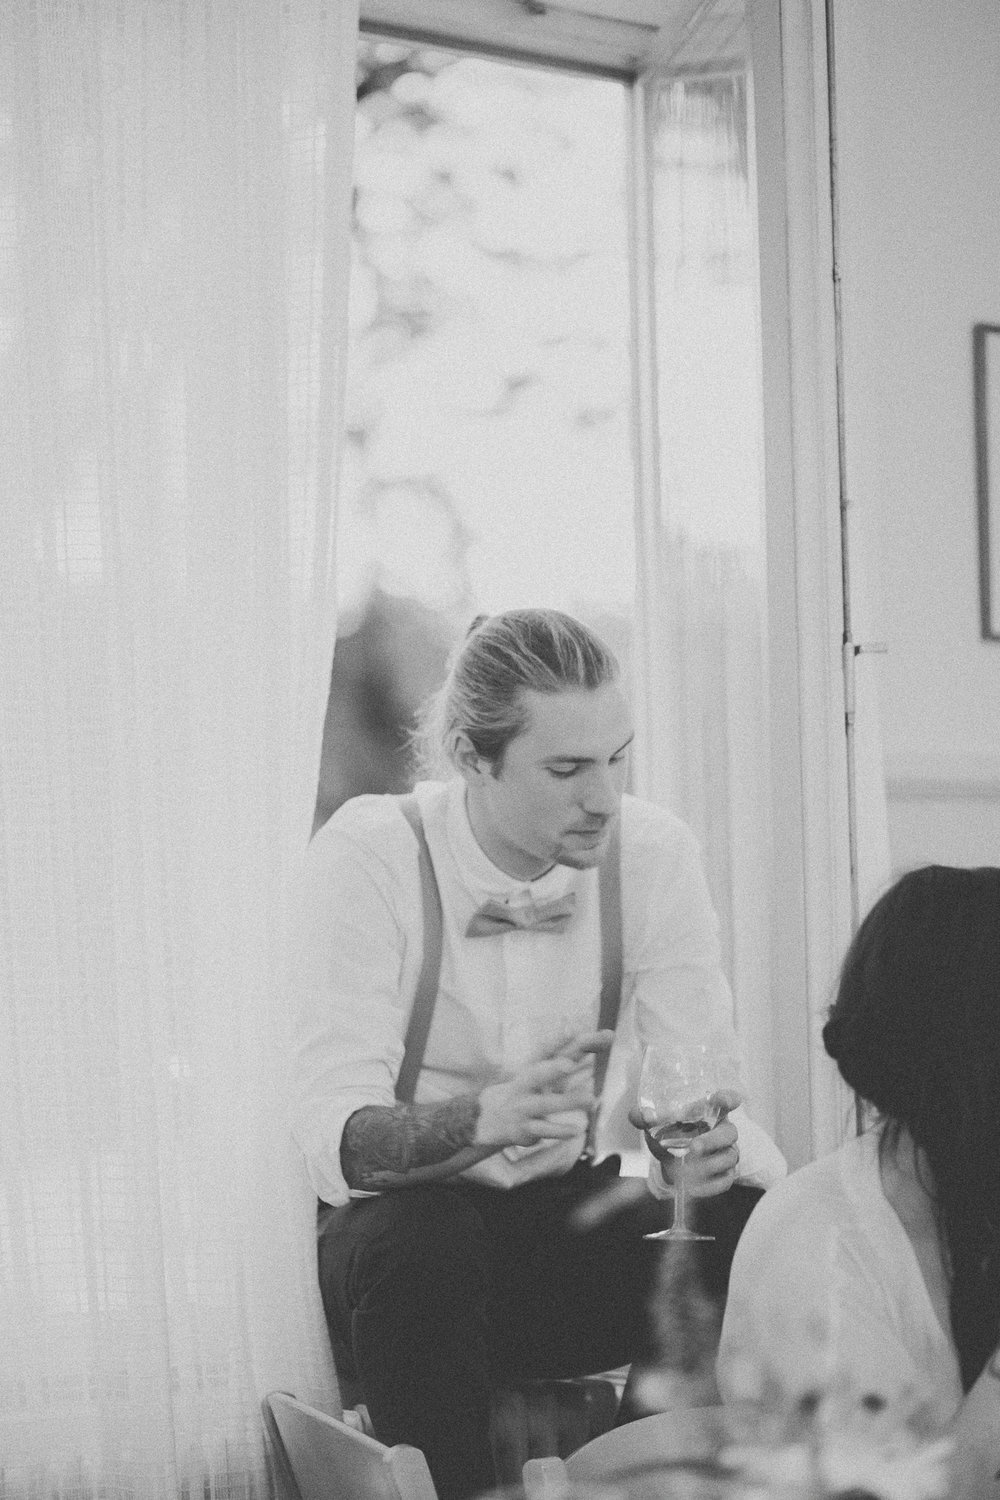 L&A+Wedding+in+Sweden+-+Liron+Erel+Photographer+0142.jpg